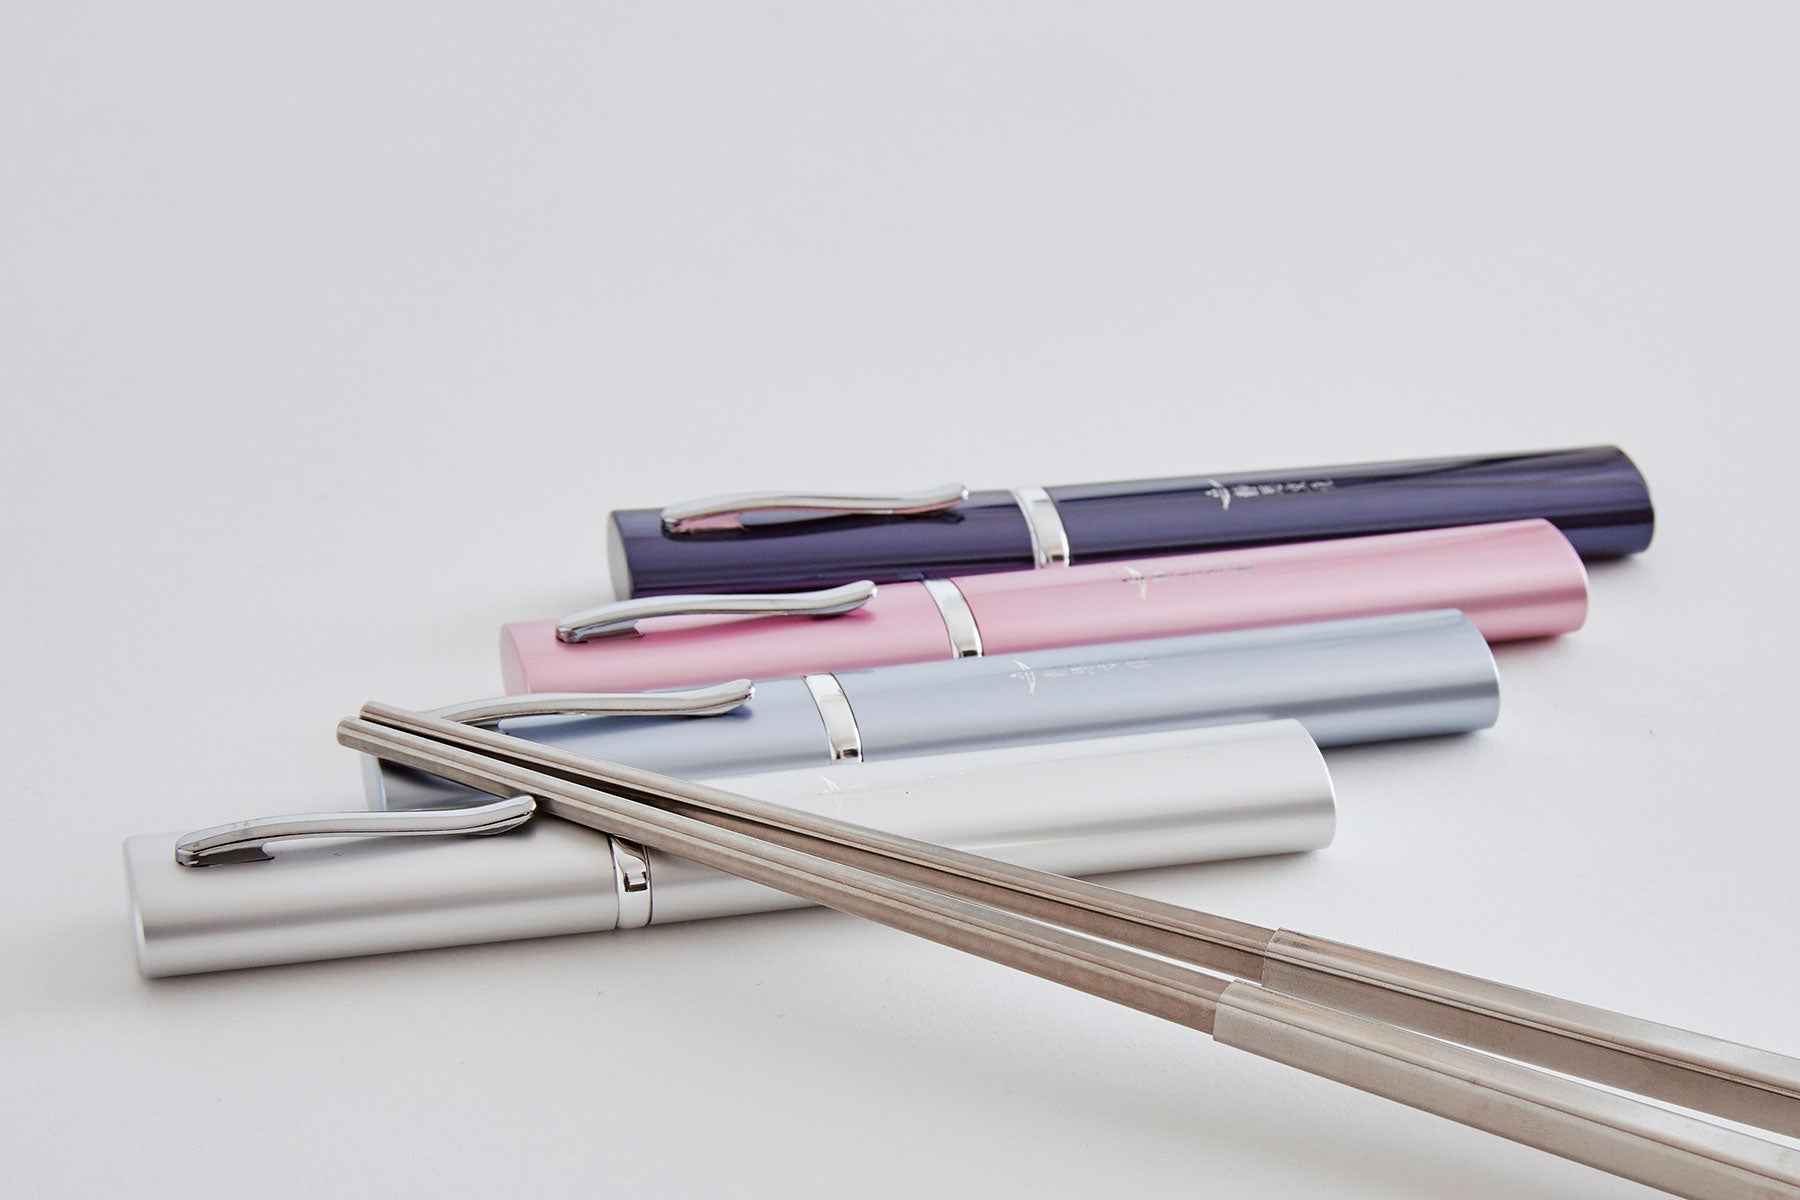 Stainless Steel Retractable Chopsticks